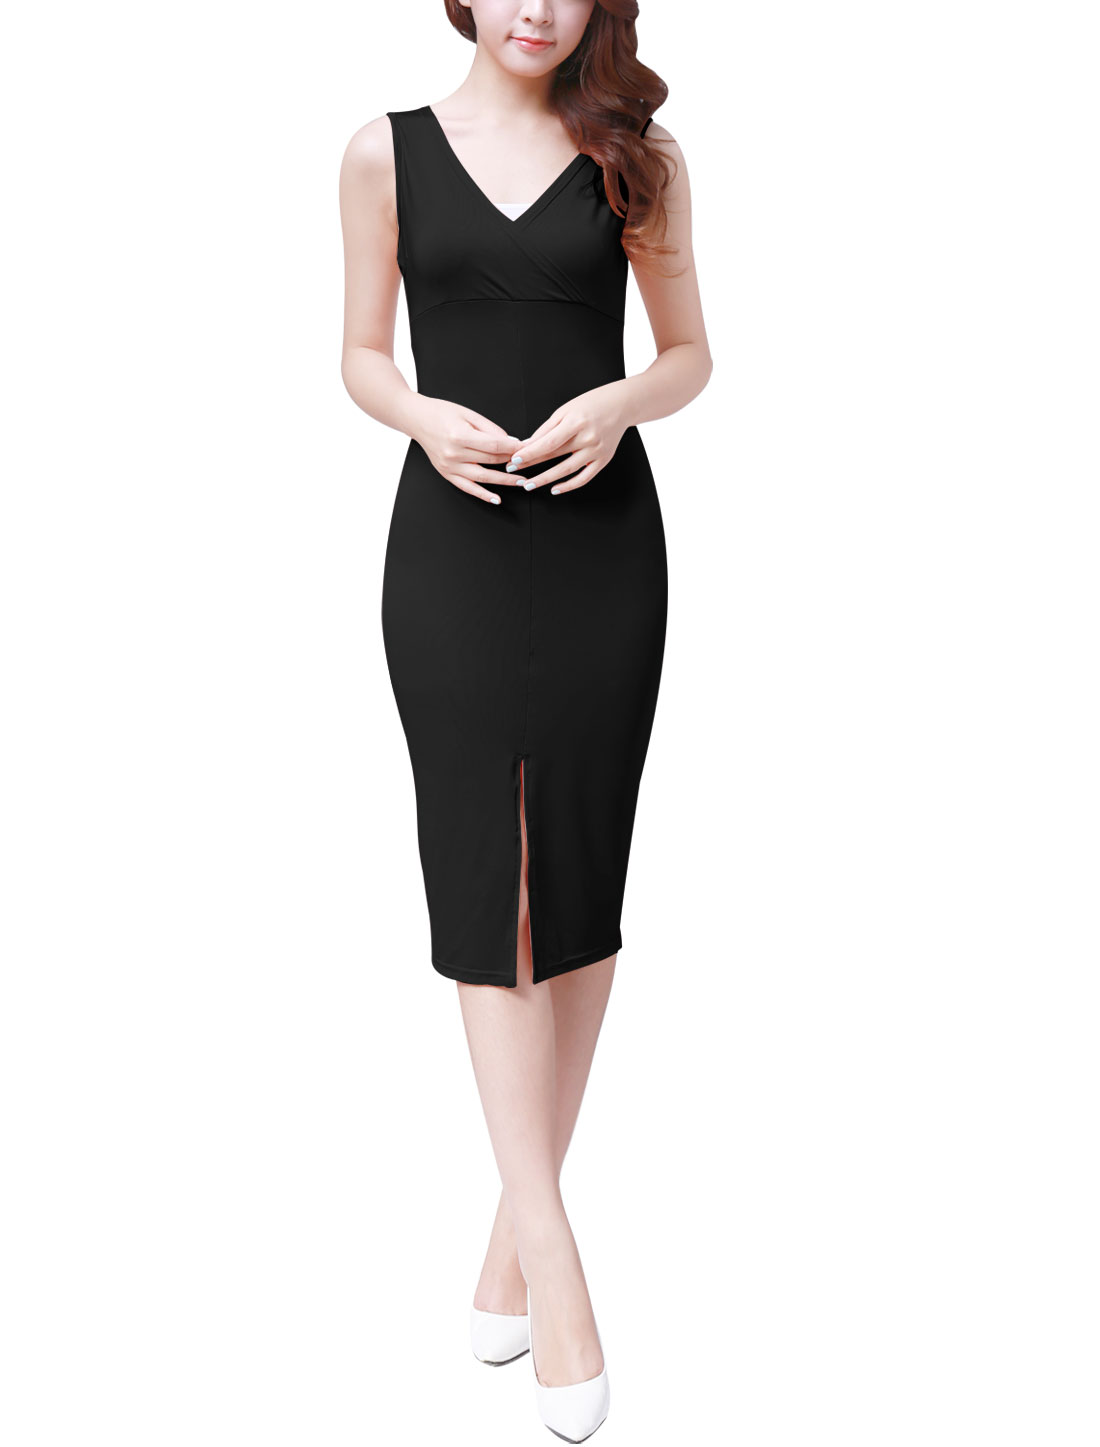 Stylish Ladies Solid Black Split Front Detail Knee-Length Dress L